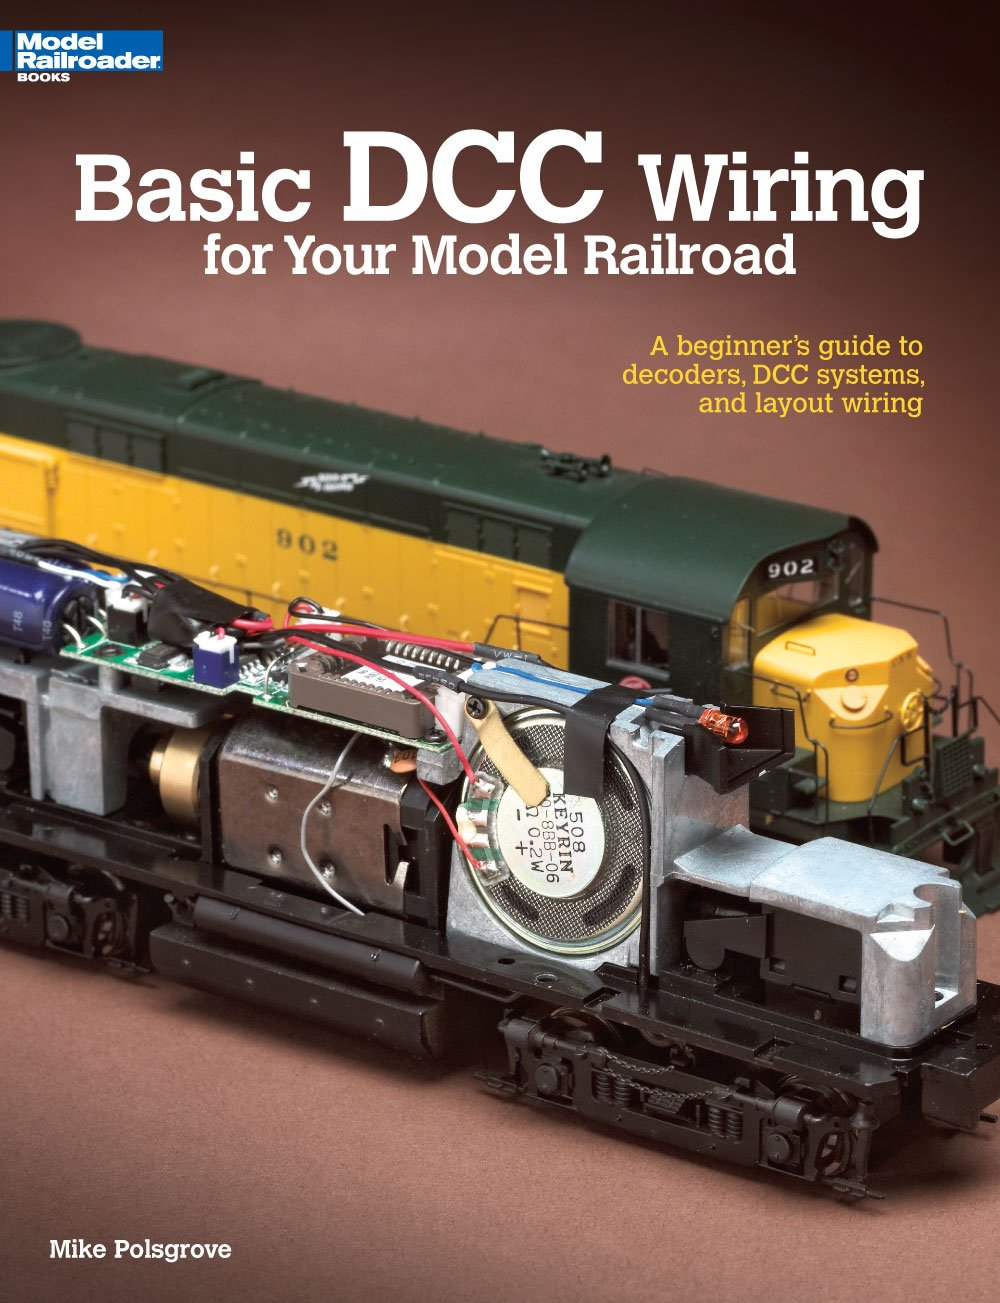 basic dcc wiring for your model railroad a beginner's guide to dcc track wiring  dcc track wiring diagrams basic dcc wiring for your model railroad a beginner's guide to decoders, dcc systems, and layout wiring mike polsgrove 8601406507364 amazon com books